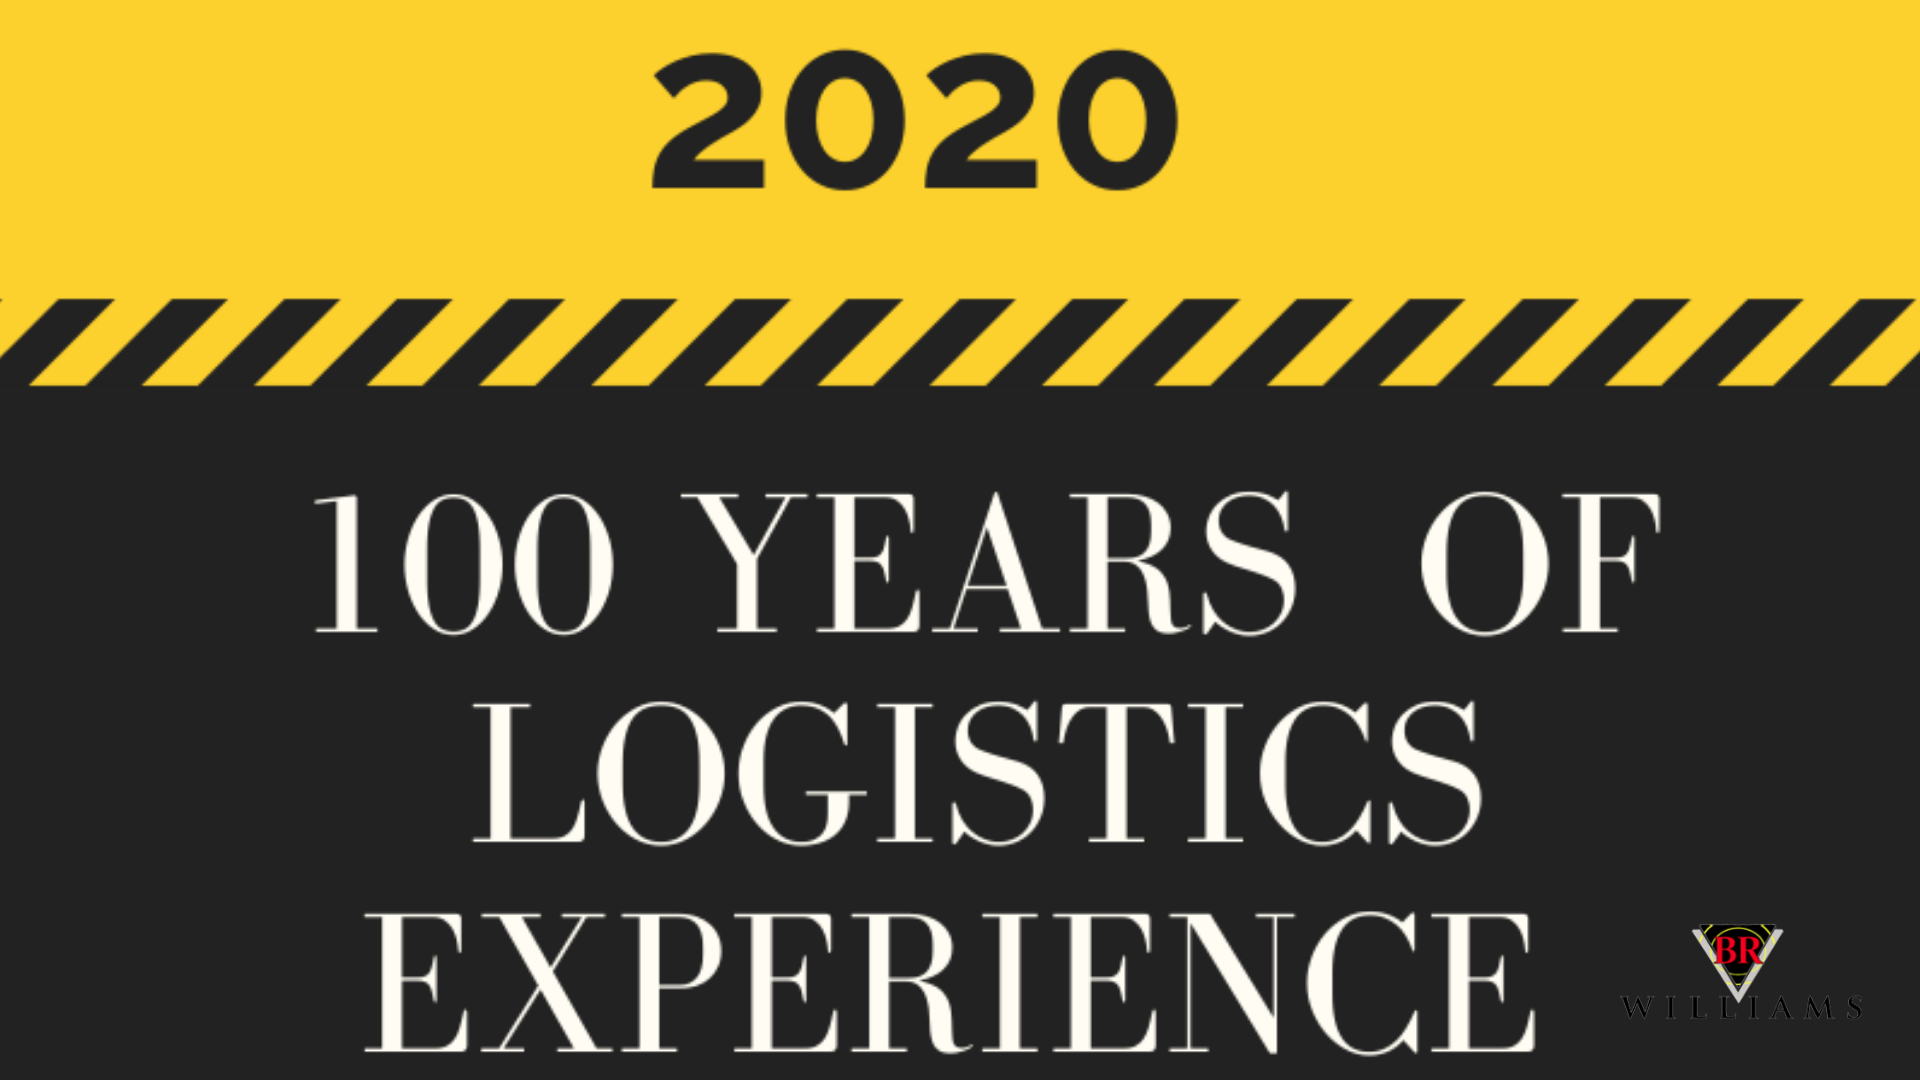 BR Williams Celebrates Logistics 10th Anniversary and 100 Years of Service